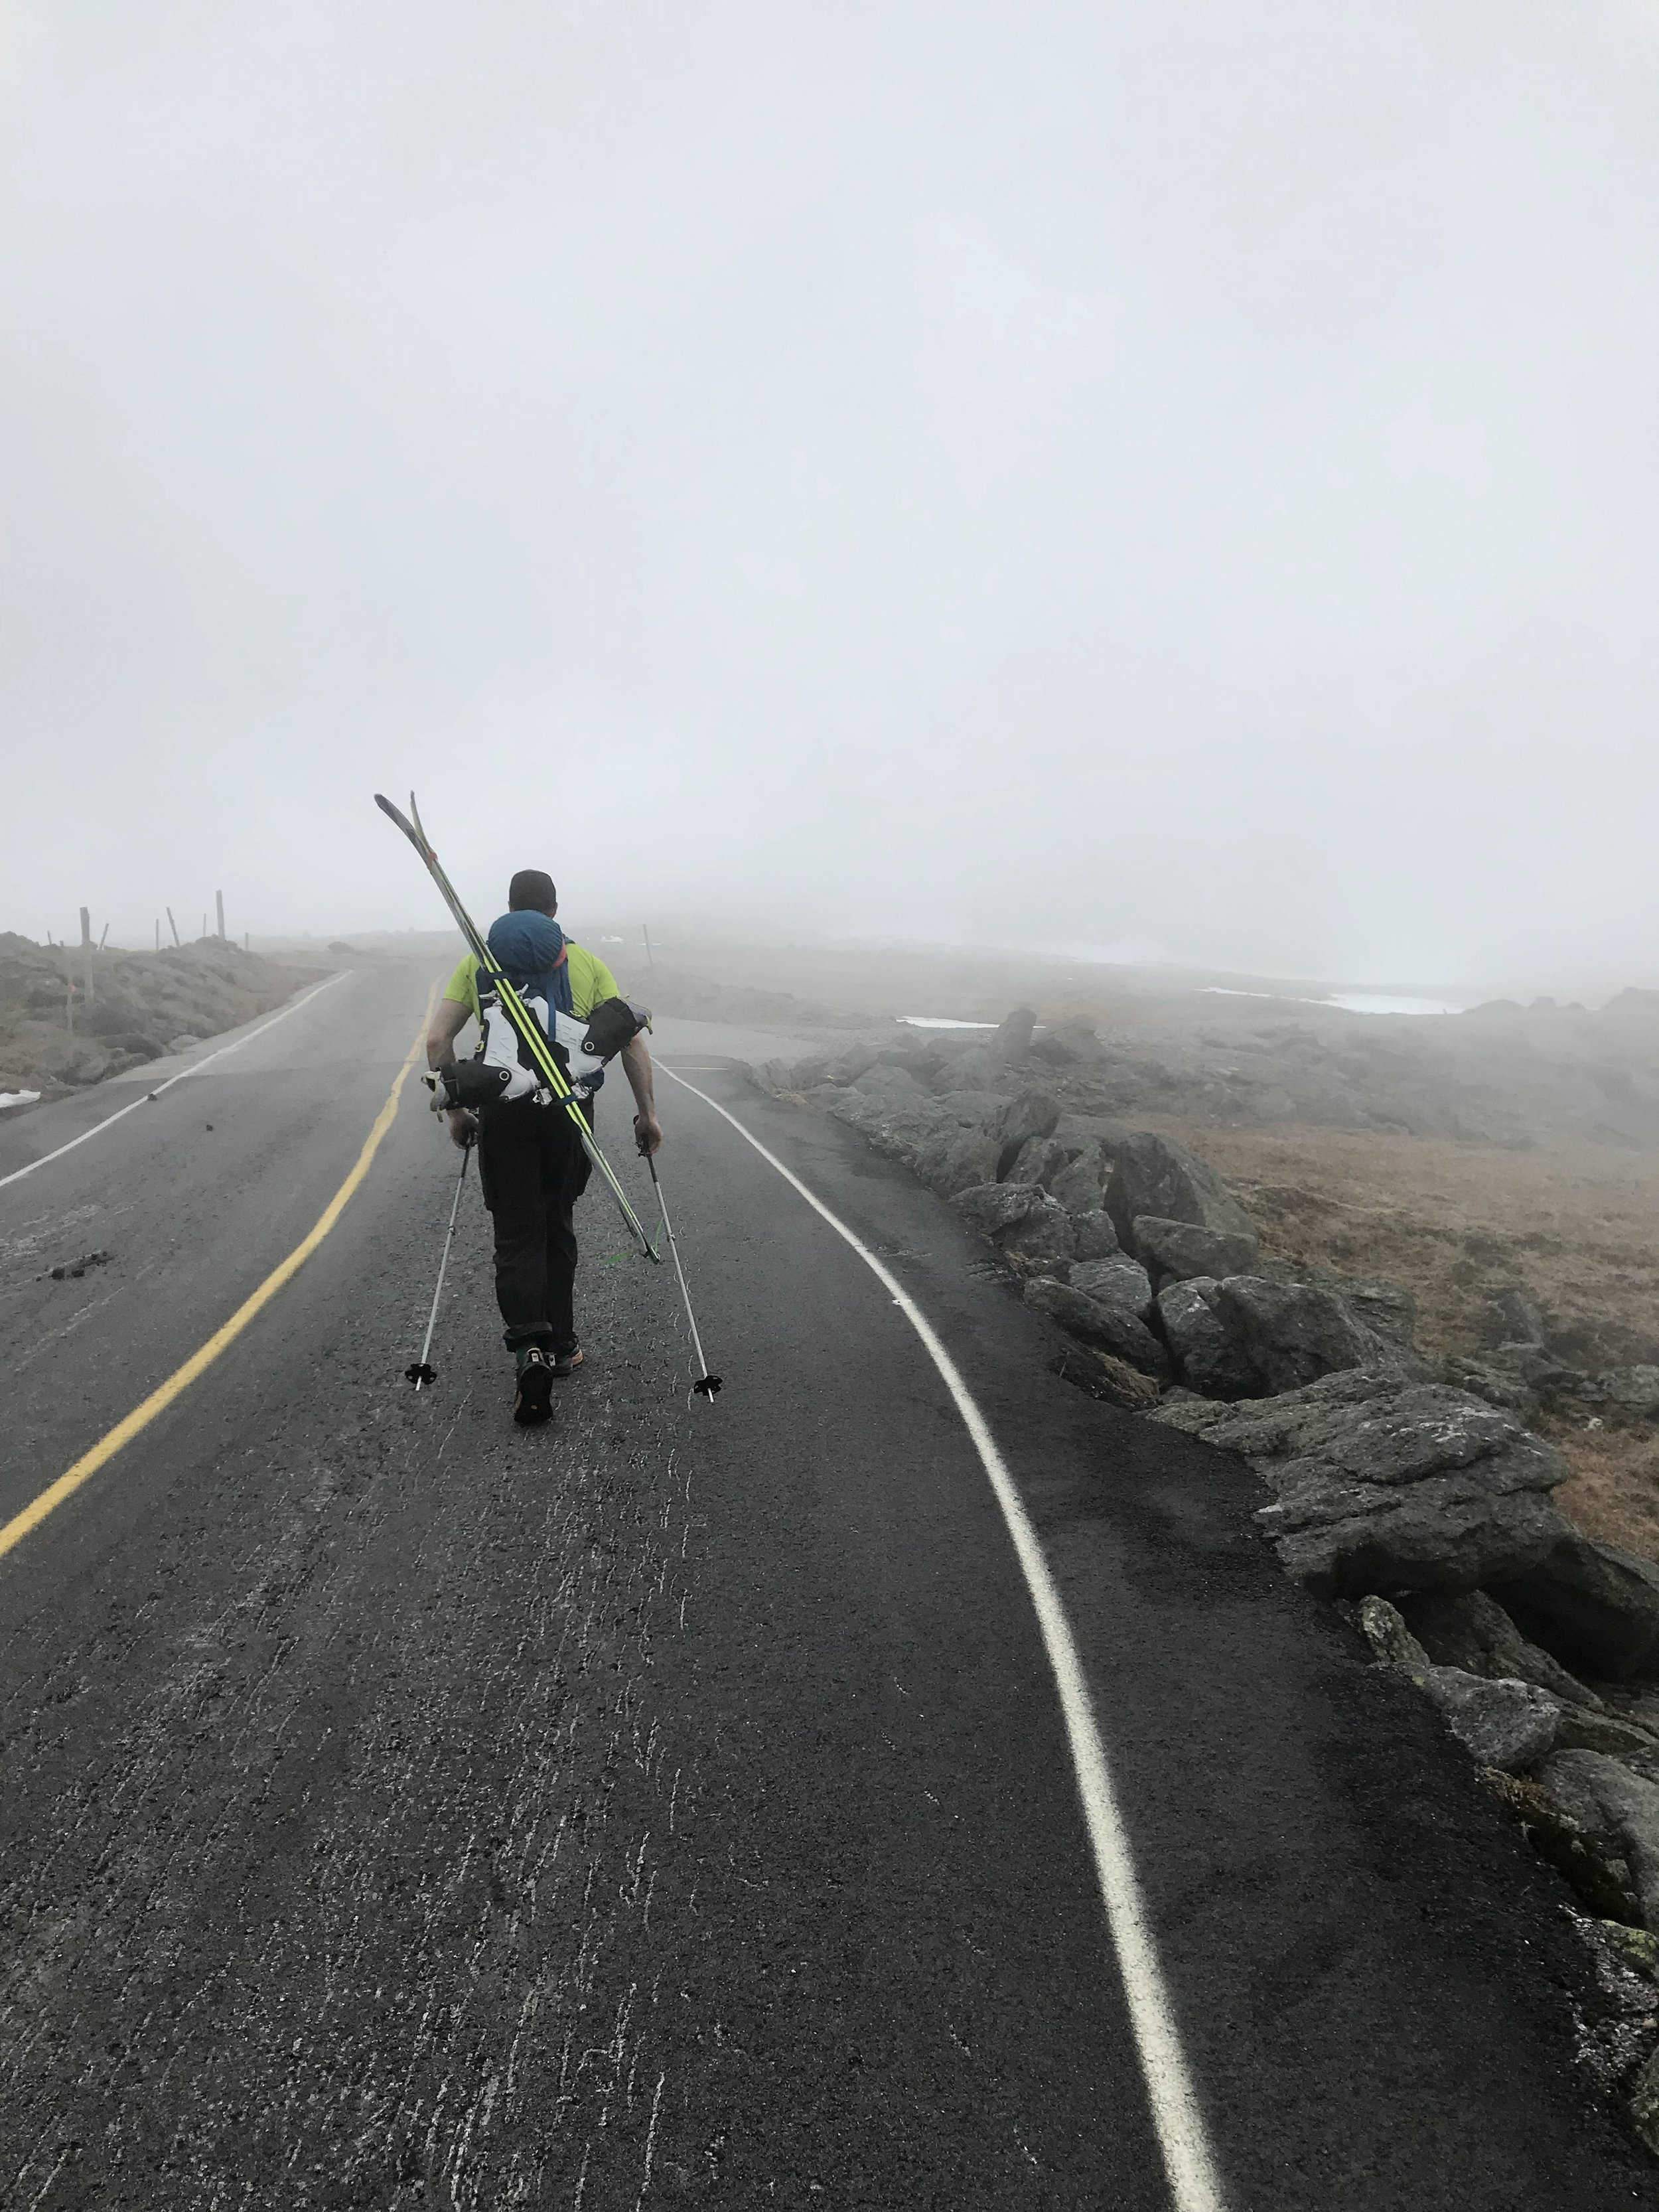 Skis on the auto road